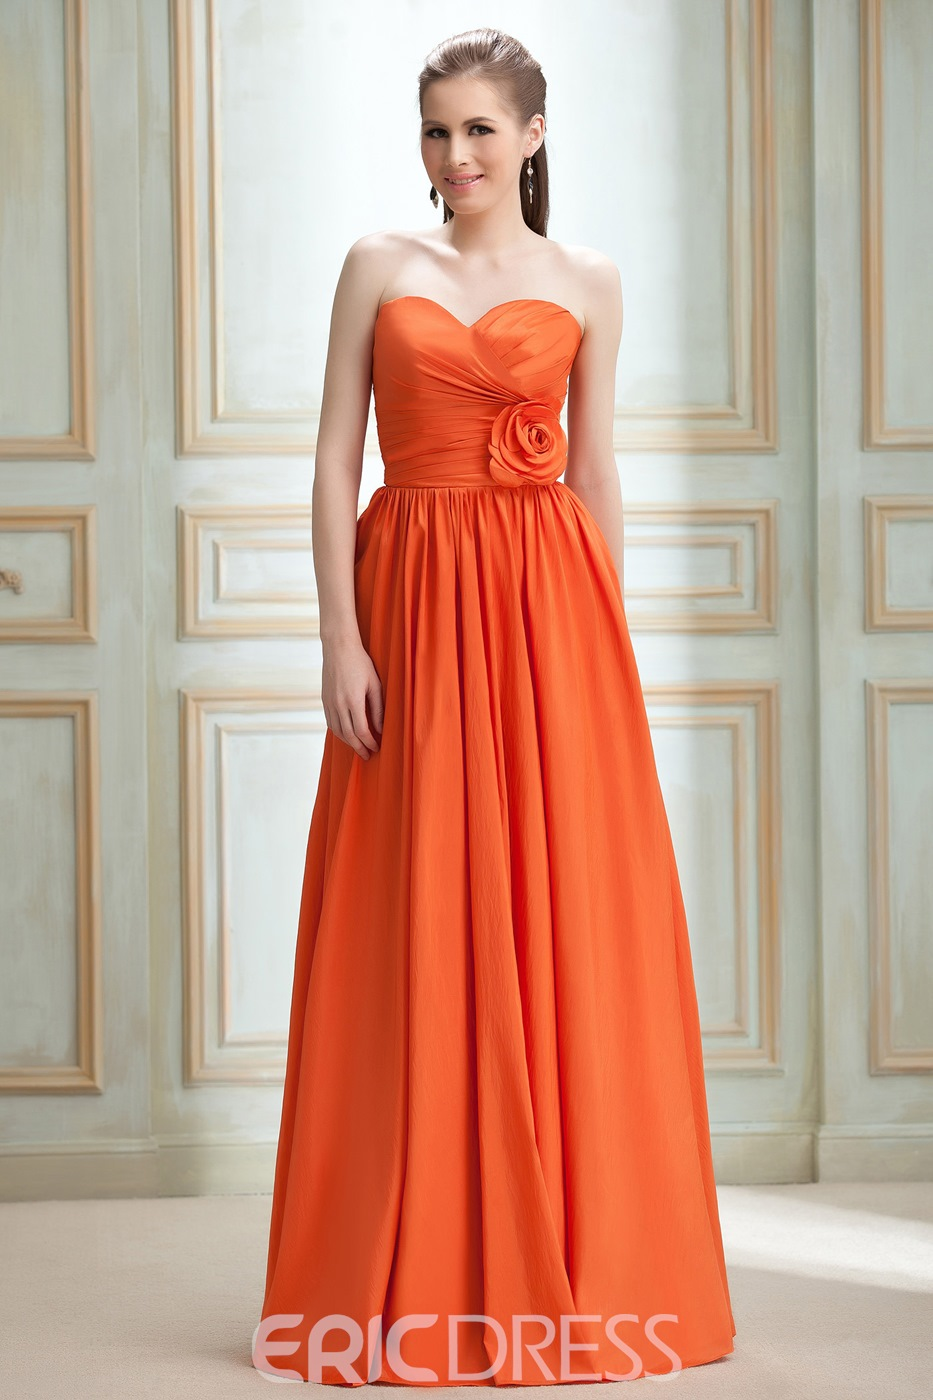 Attractive Flower Empire Waist A-line Sweetheart Bridesmaid Dress